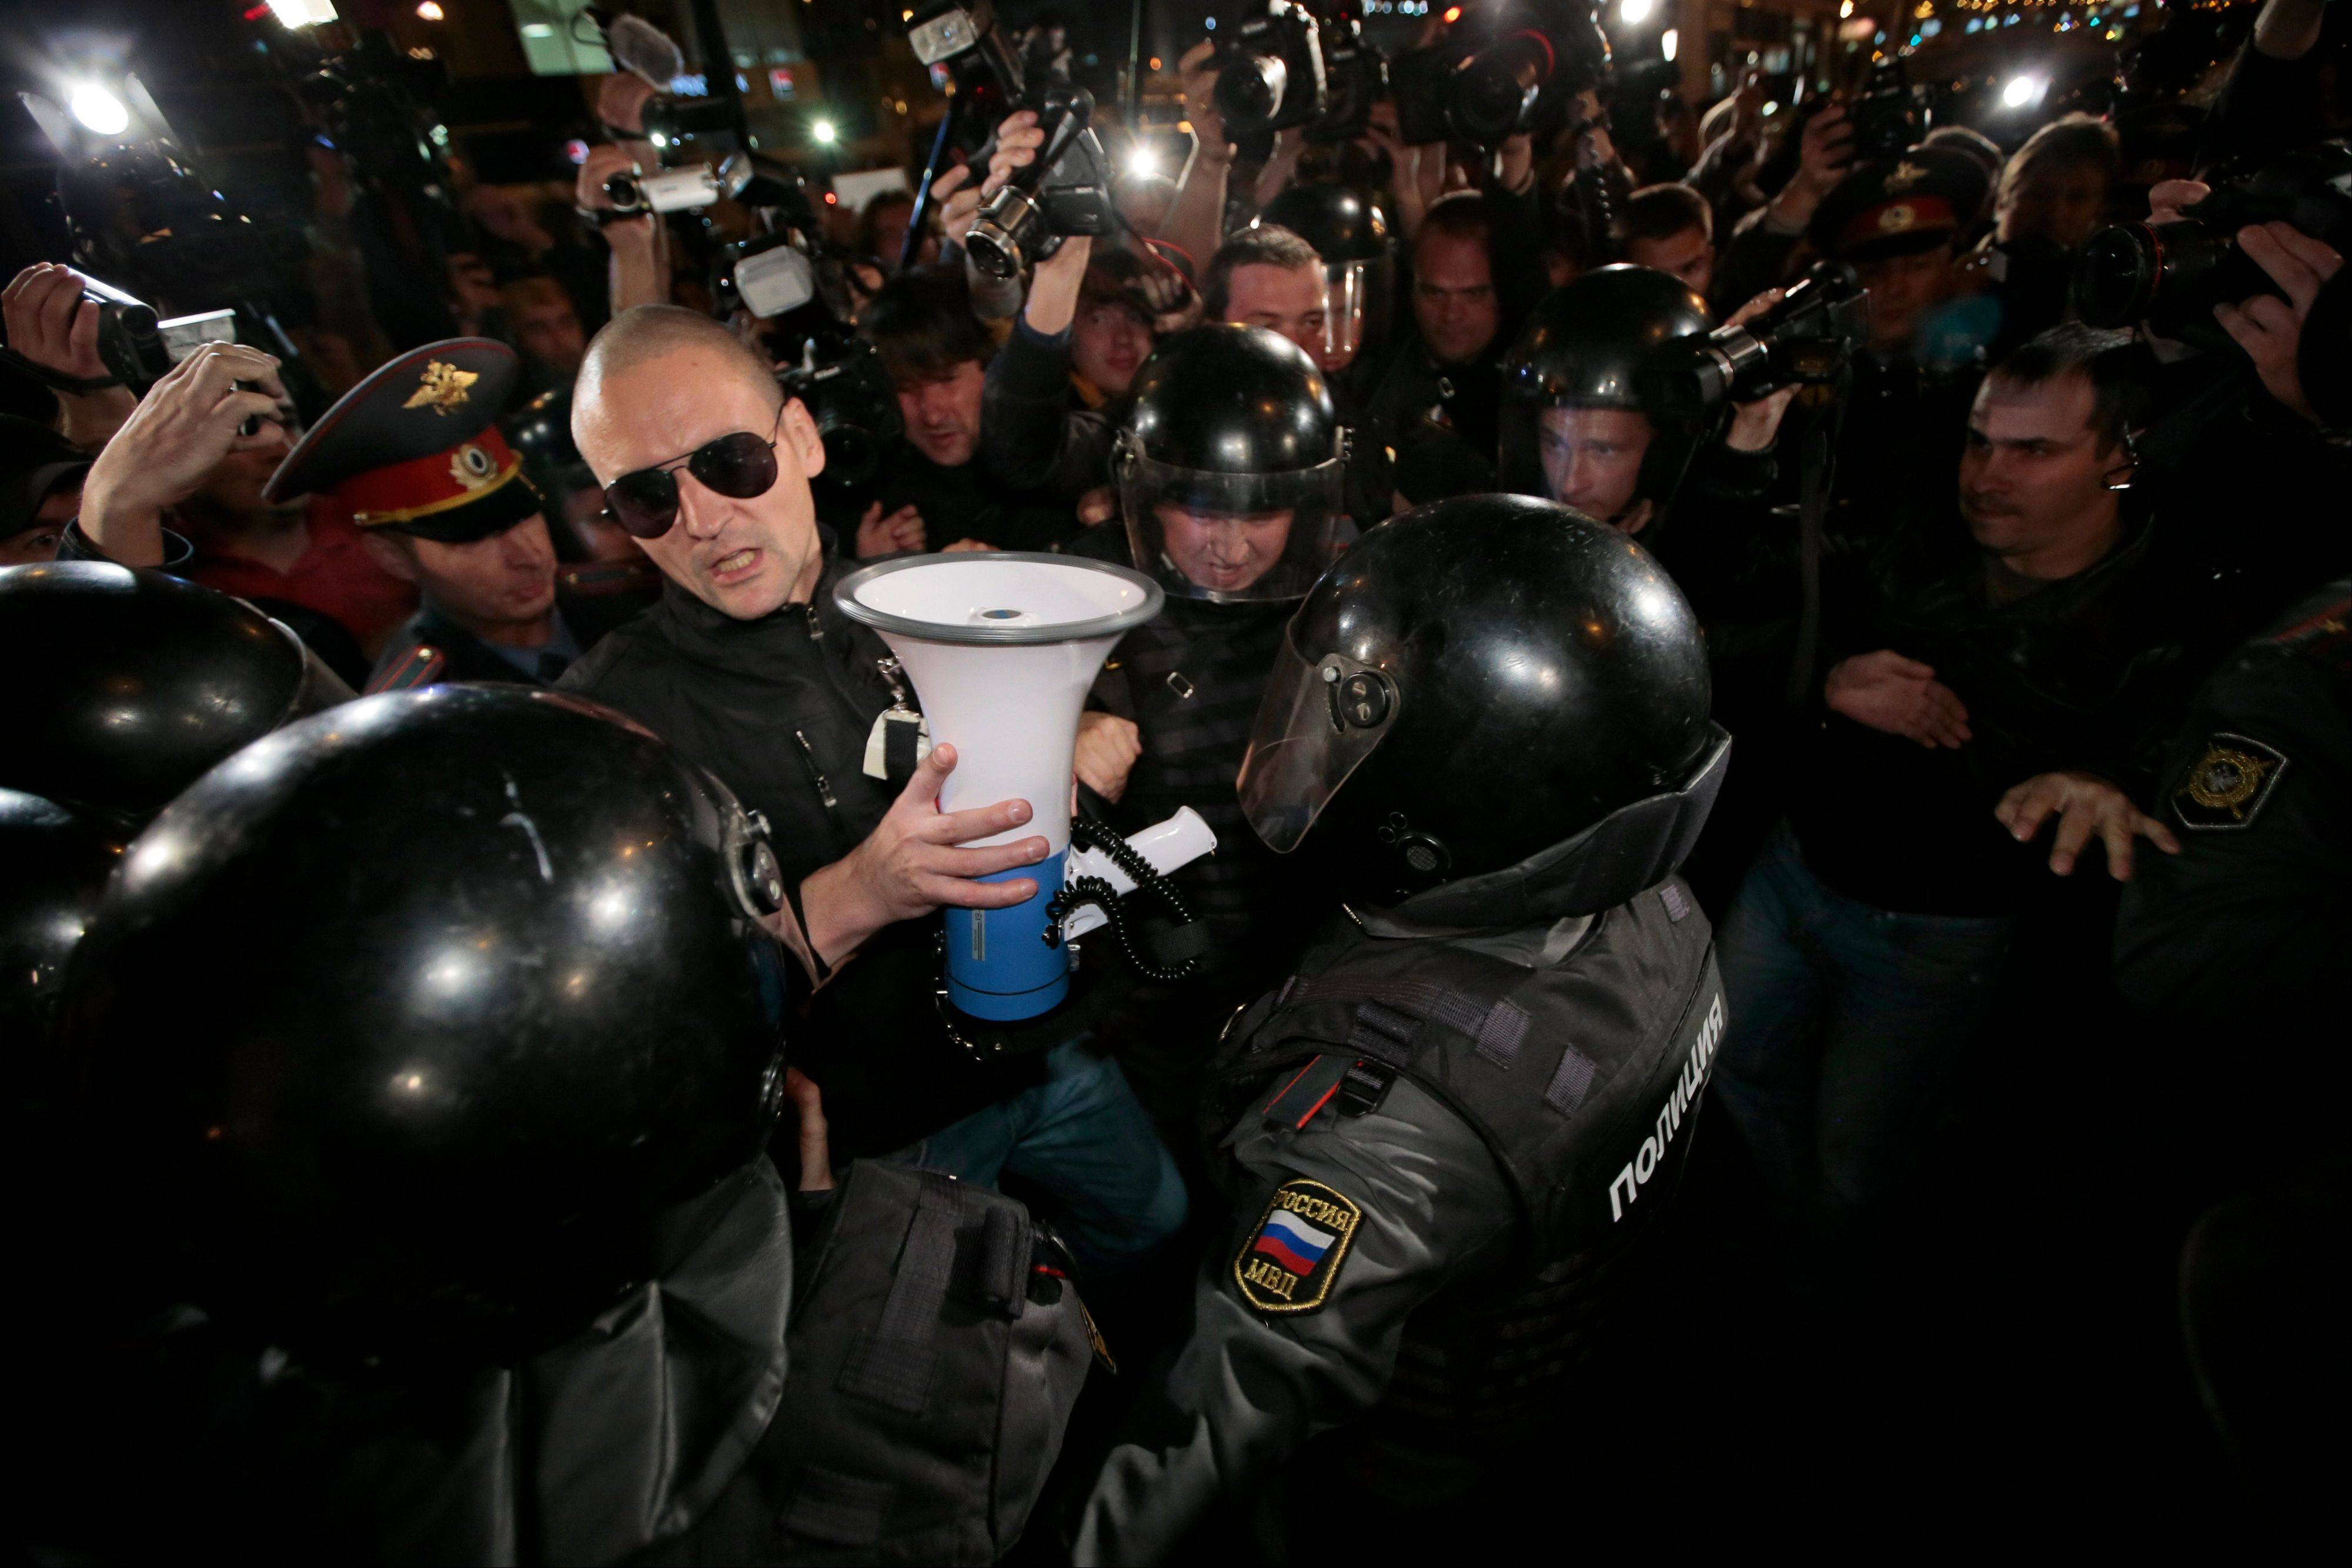 Police officers detain opposition leader Sergei Udaltsov, in sunglasses, after a protest rally Saturday in Moscow.